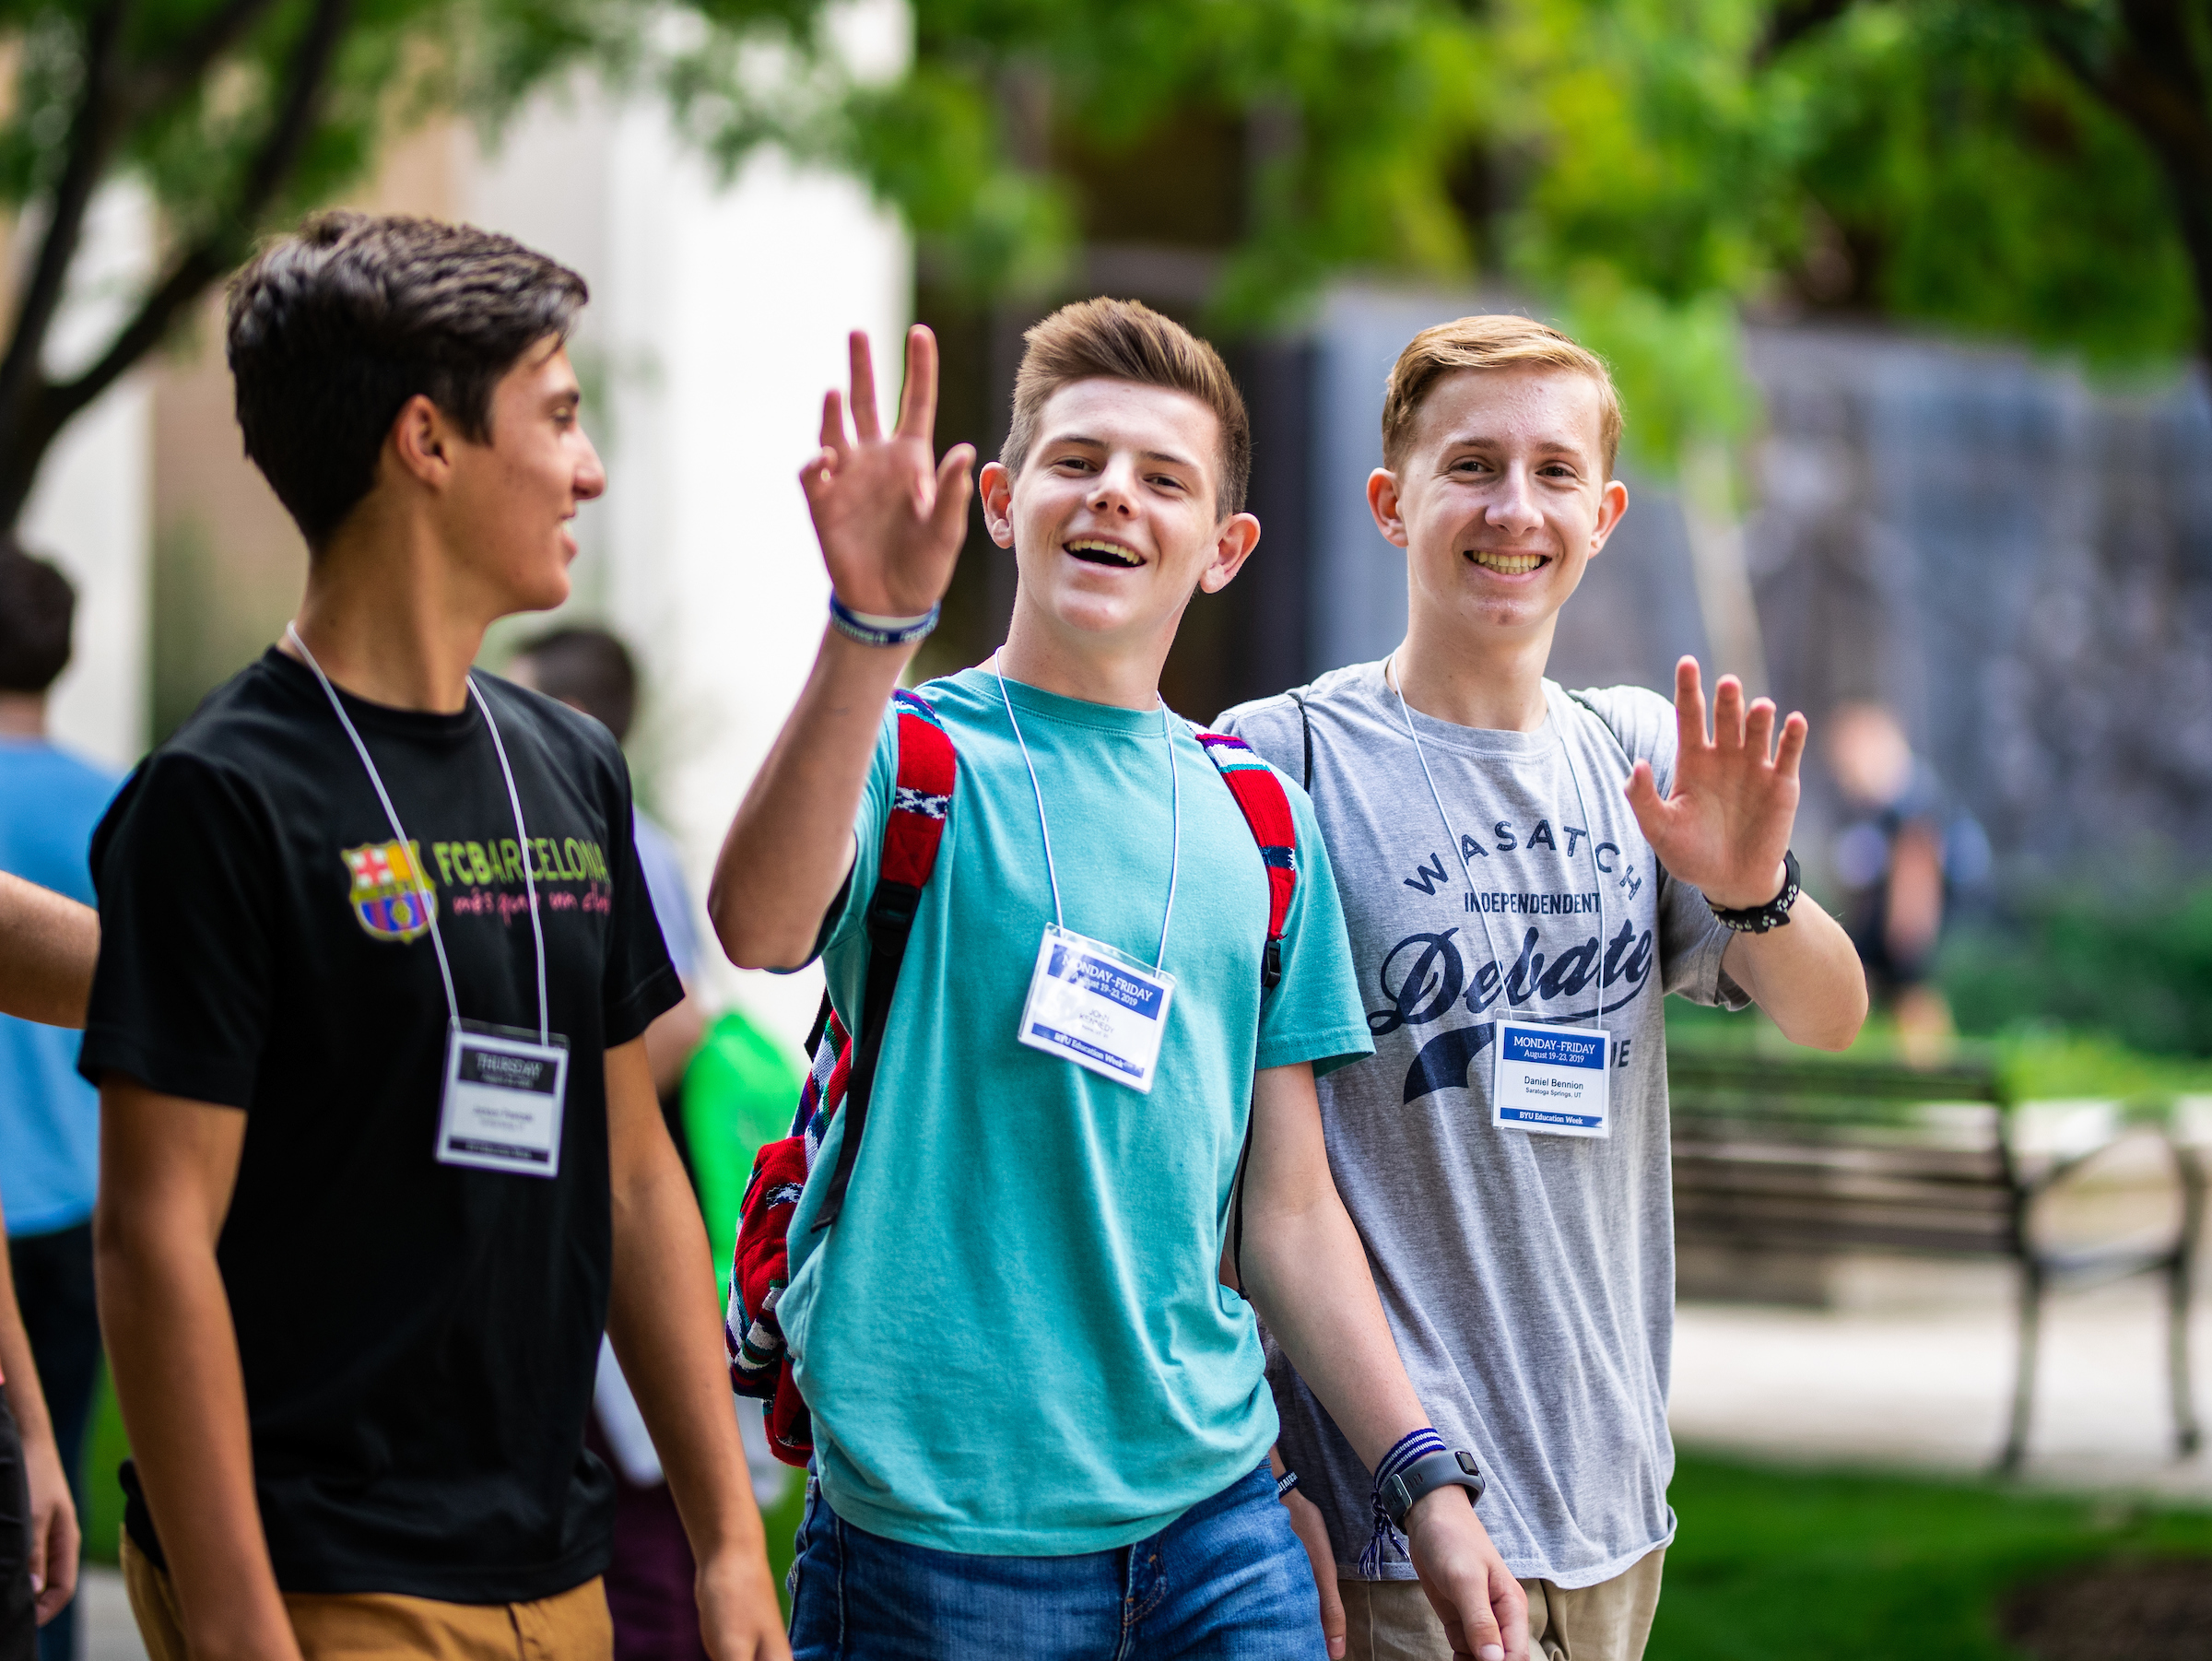 Some young men walk between sessions during BYU Education Week on Aug. 22, 2019, on the BYU campus in Provo, Utah. The annual event is open to anyone age 14 and older.